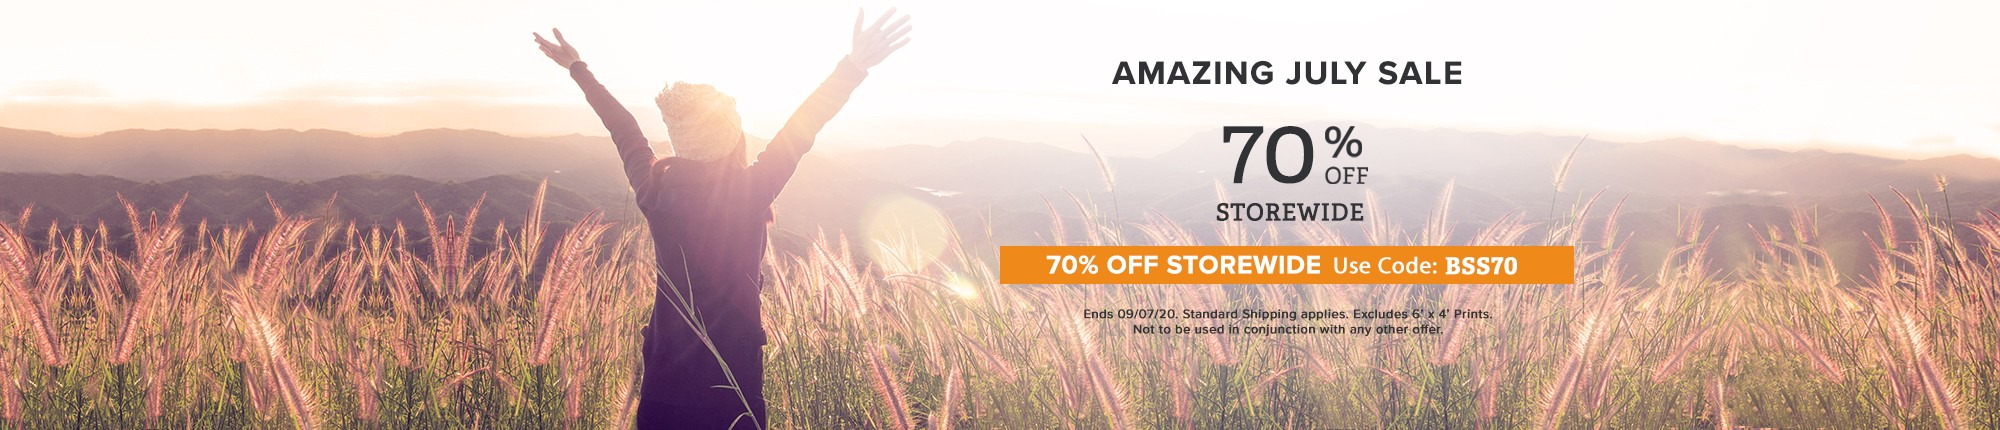 Amazing July Sale 70% off